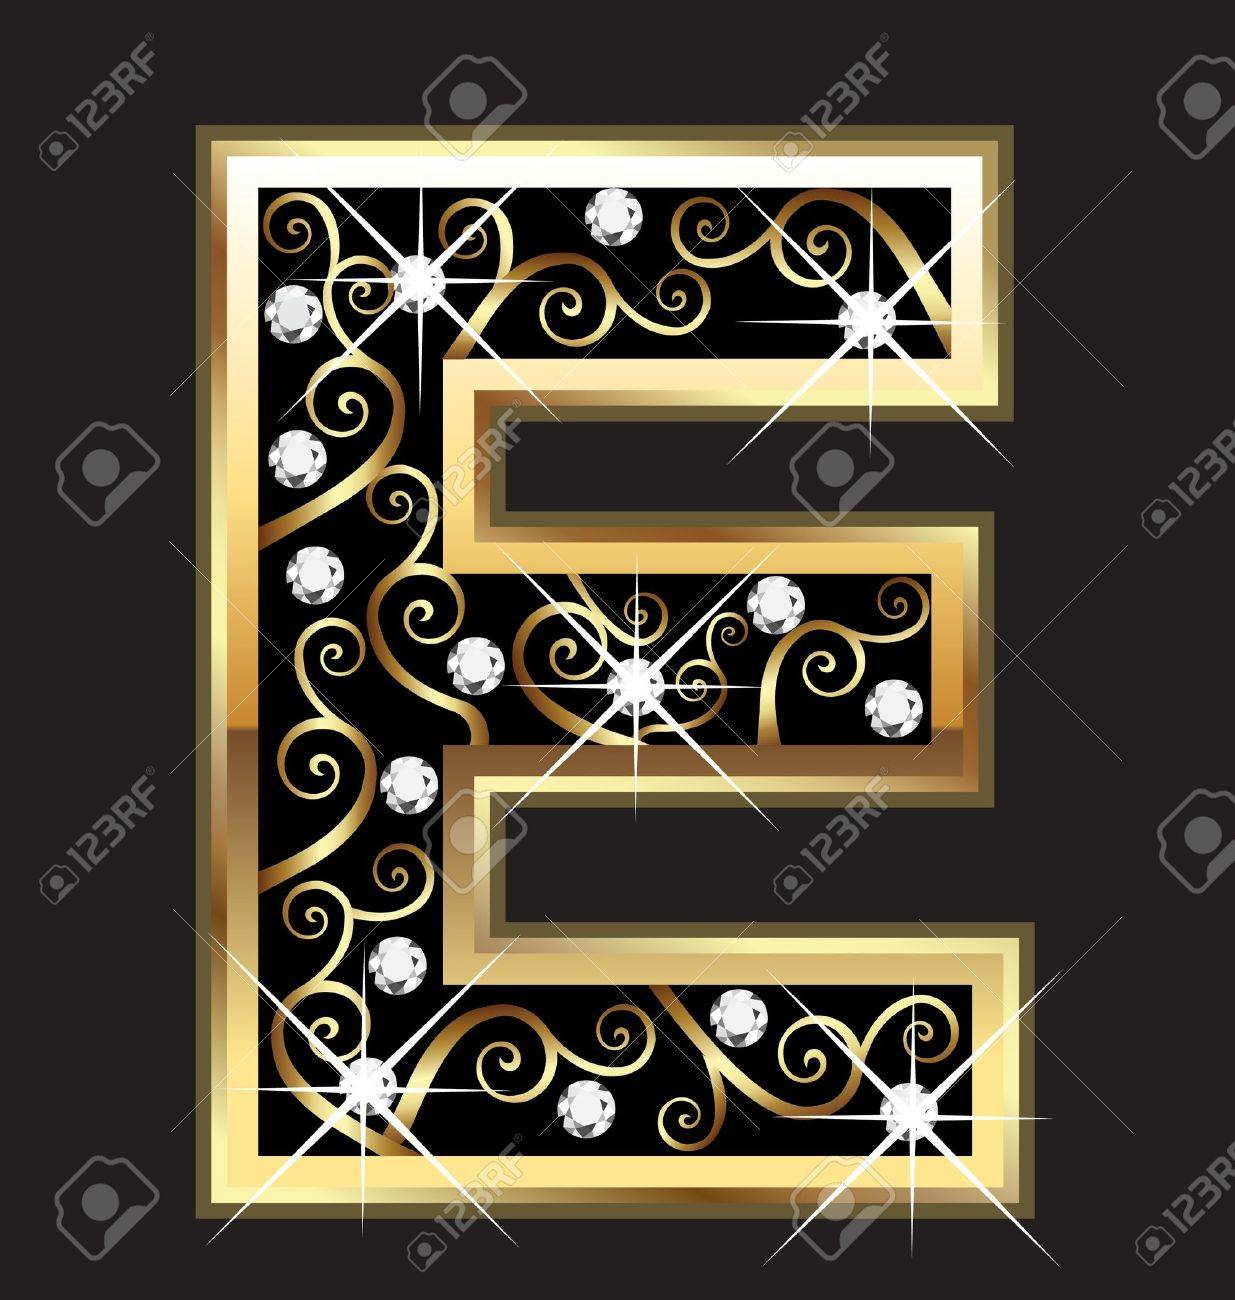 E gold letter with swirly ornaments Stock Vector - 16099624